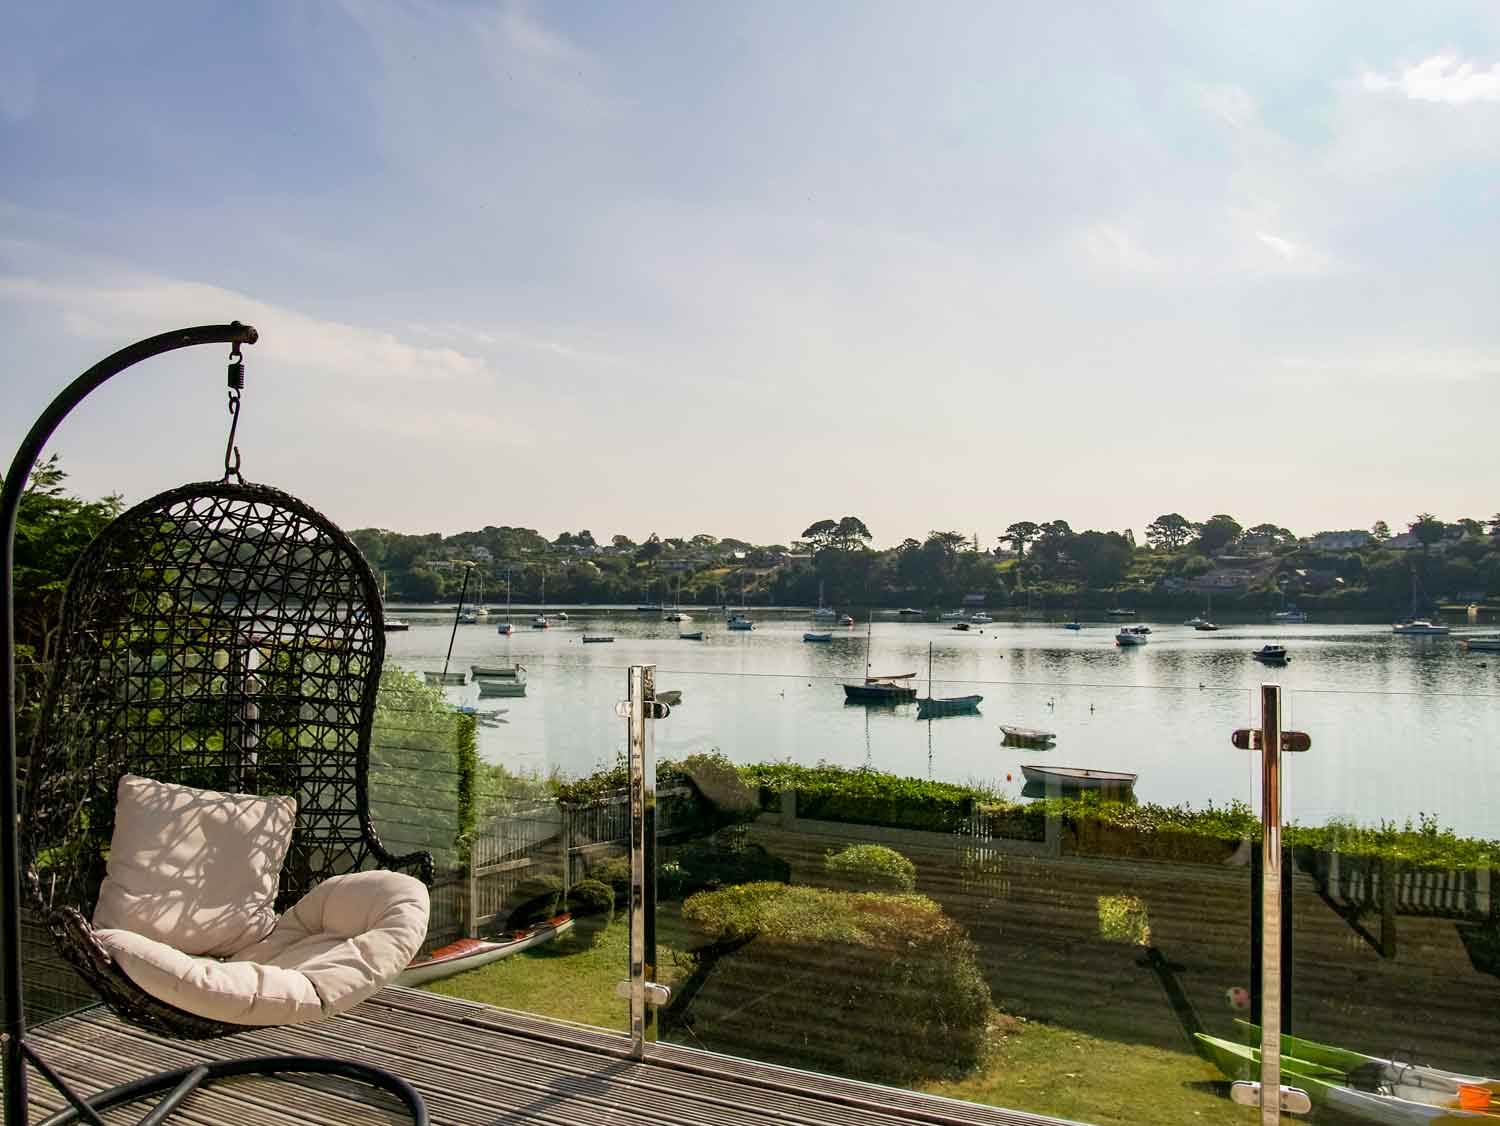 Trecarth Balcony & Seating with view of Restronguet Creek